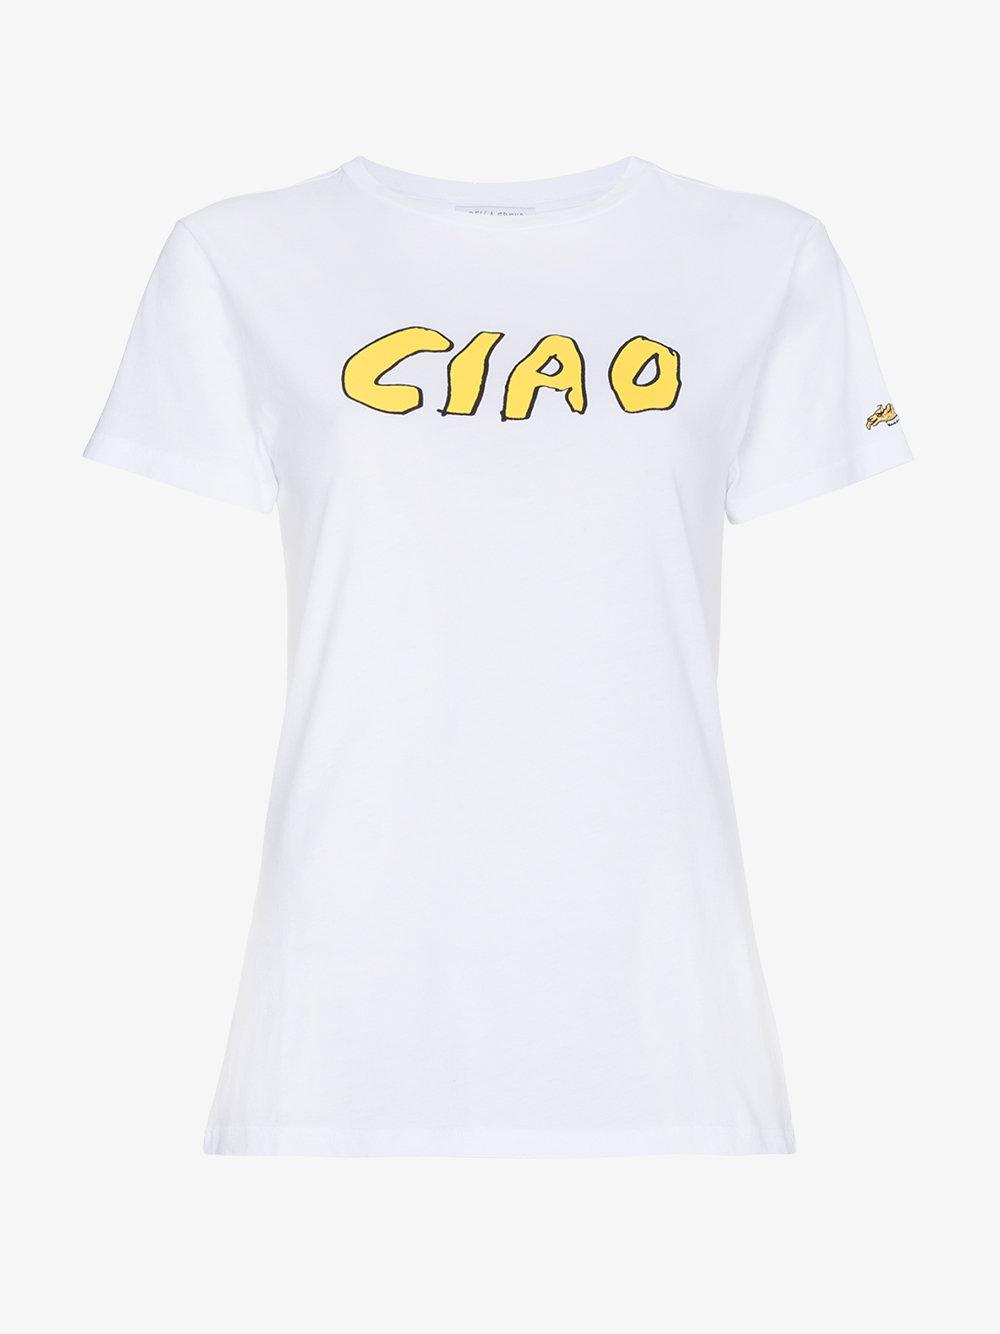 a654de303 Bella Freud Ciao T-shirt in White - Lyst